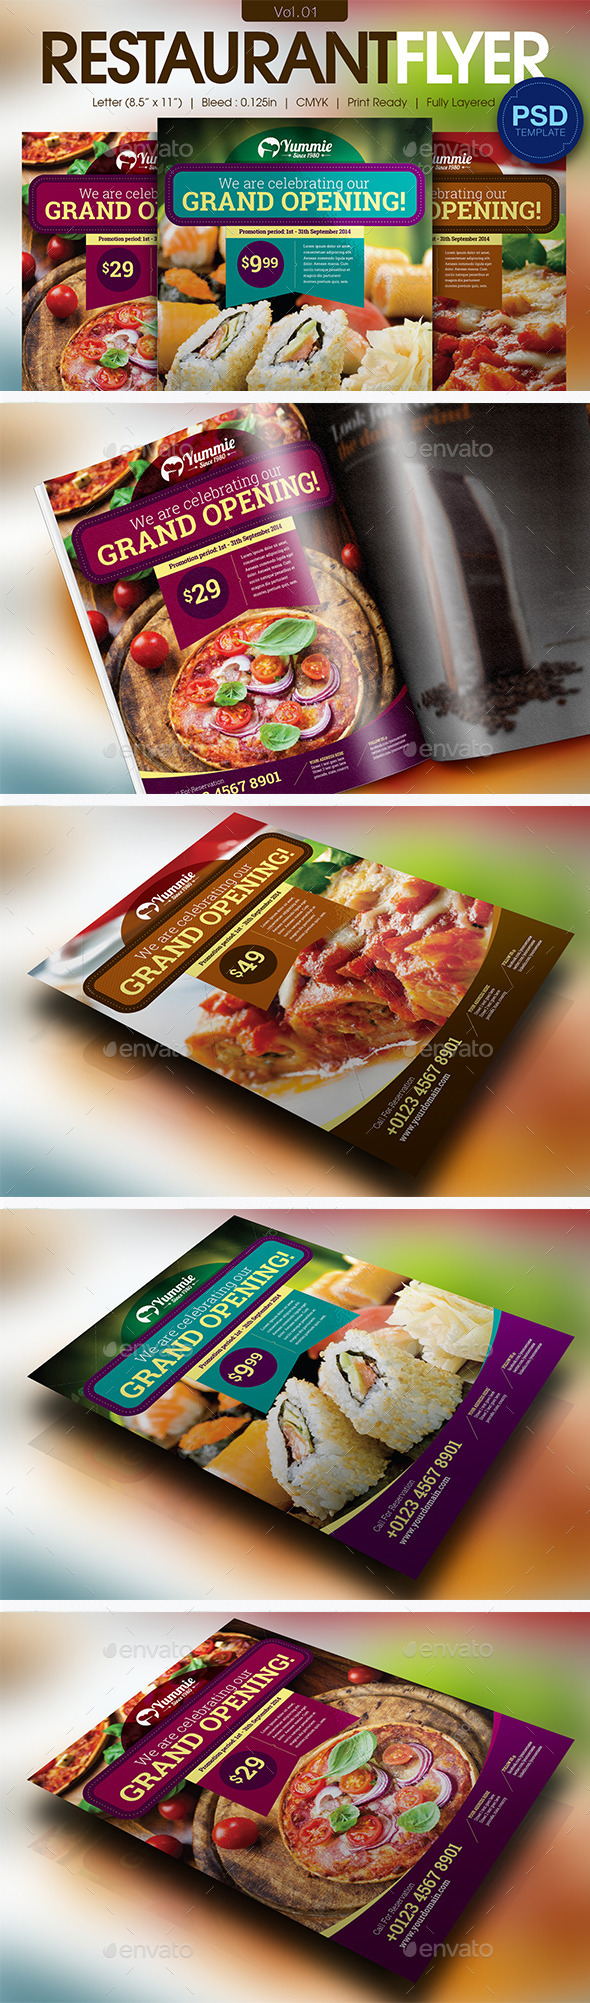 GraphicRiver Restaurant Flyer Vol.01 11595821